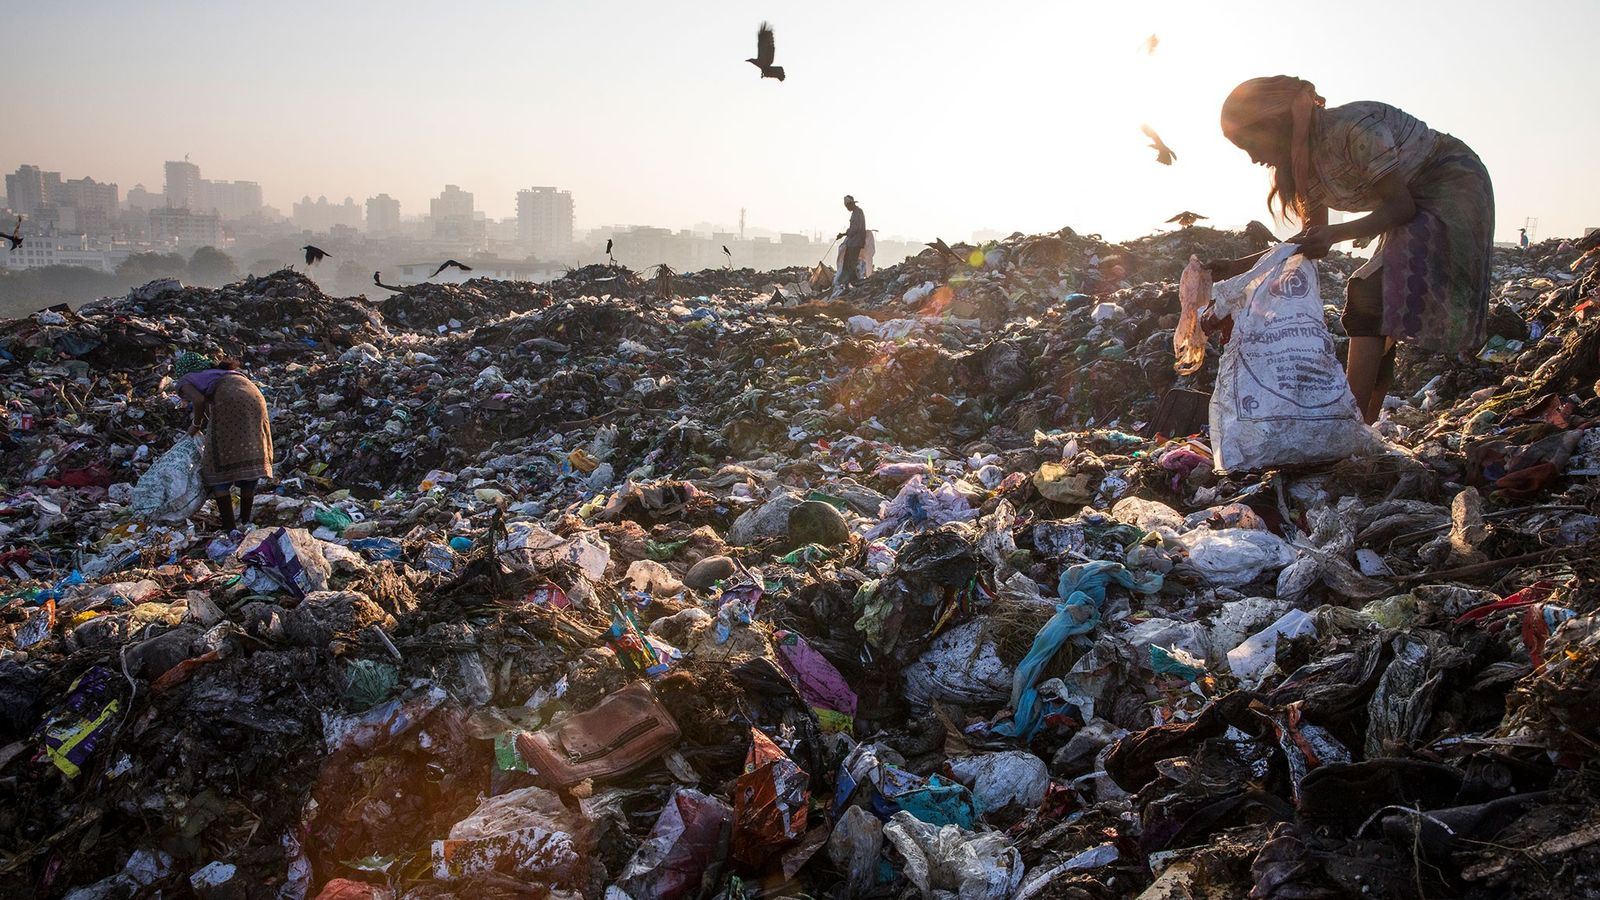 In Kalyan, on the outskirts of Mumbai, India, trash pickers look for sellable plastics at the ...